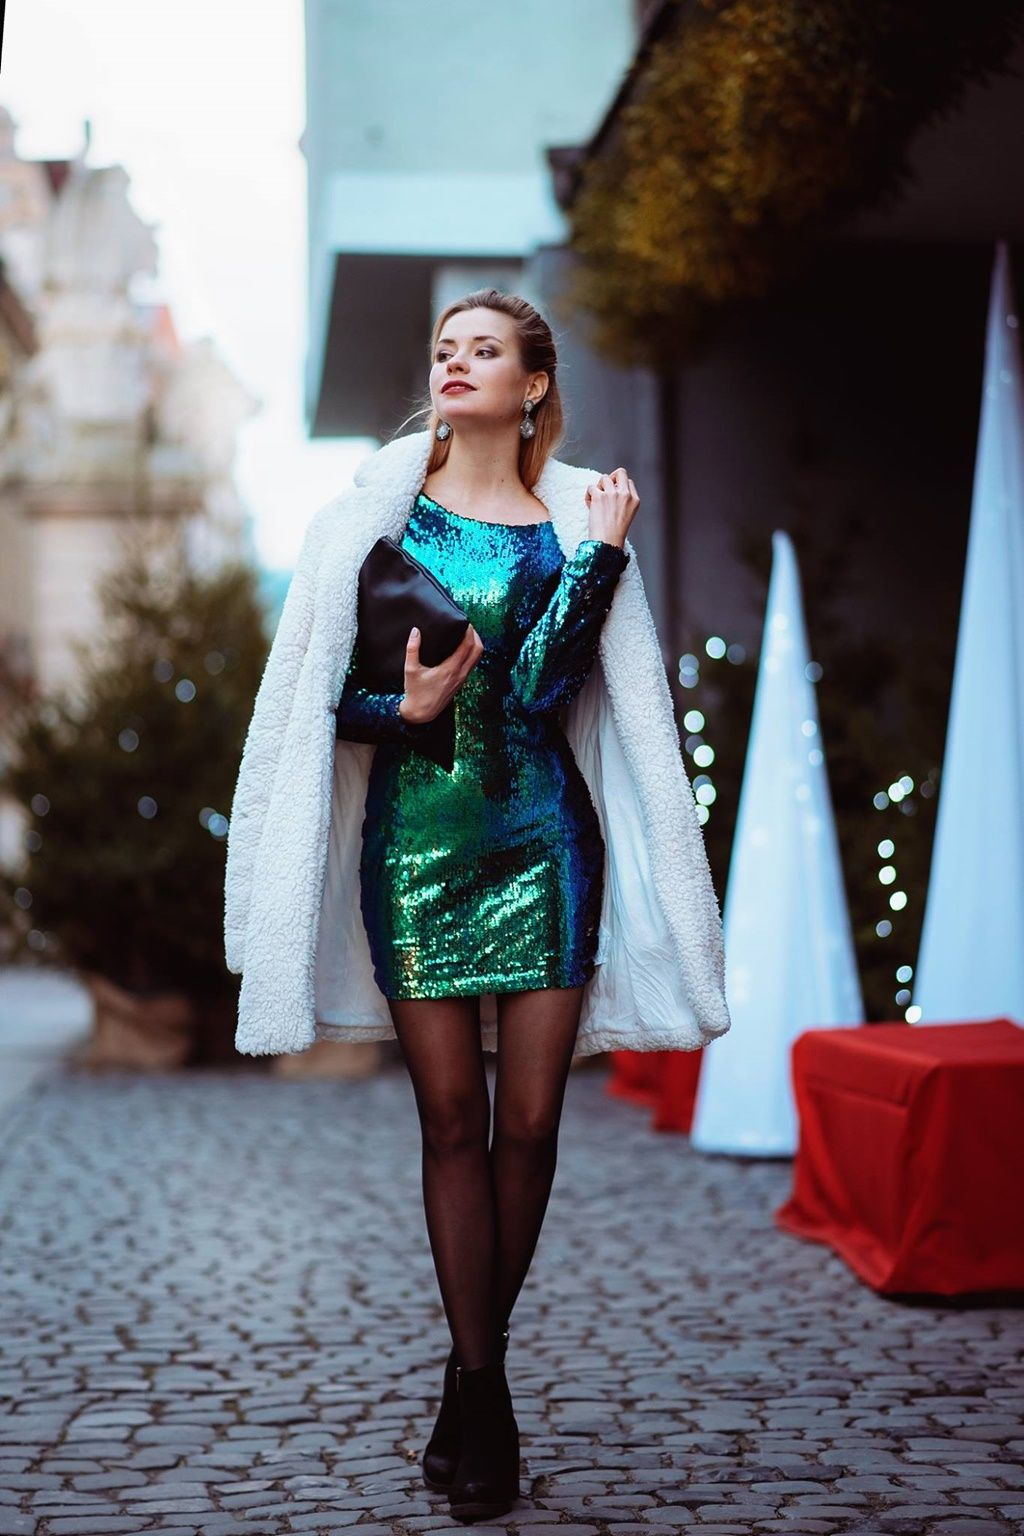 Dress for New Year's Eve Dresses, Sequin cocktail dress